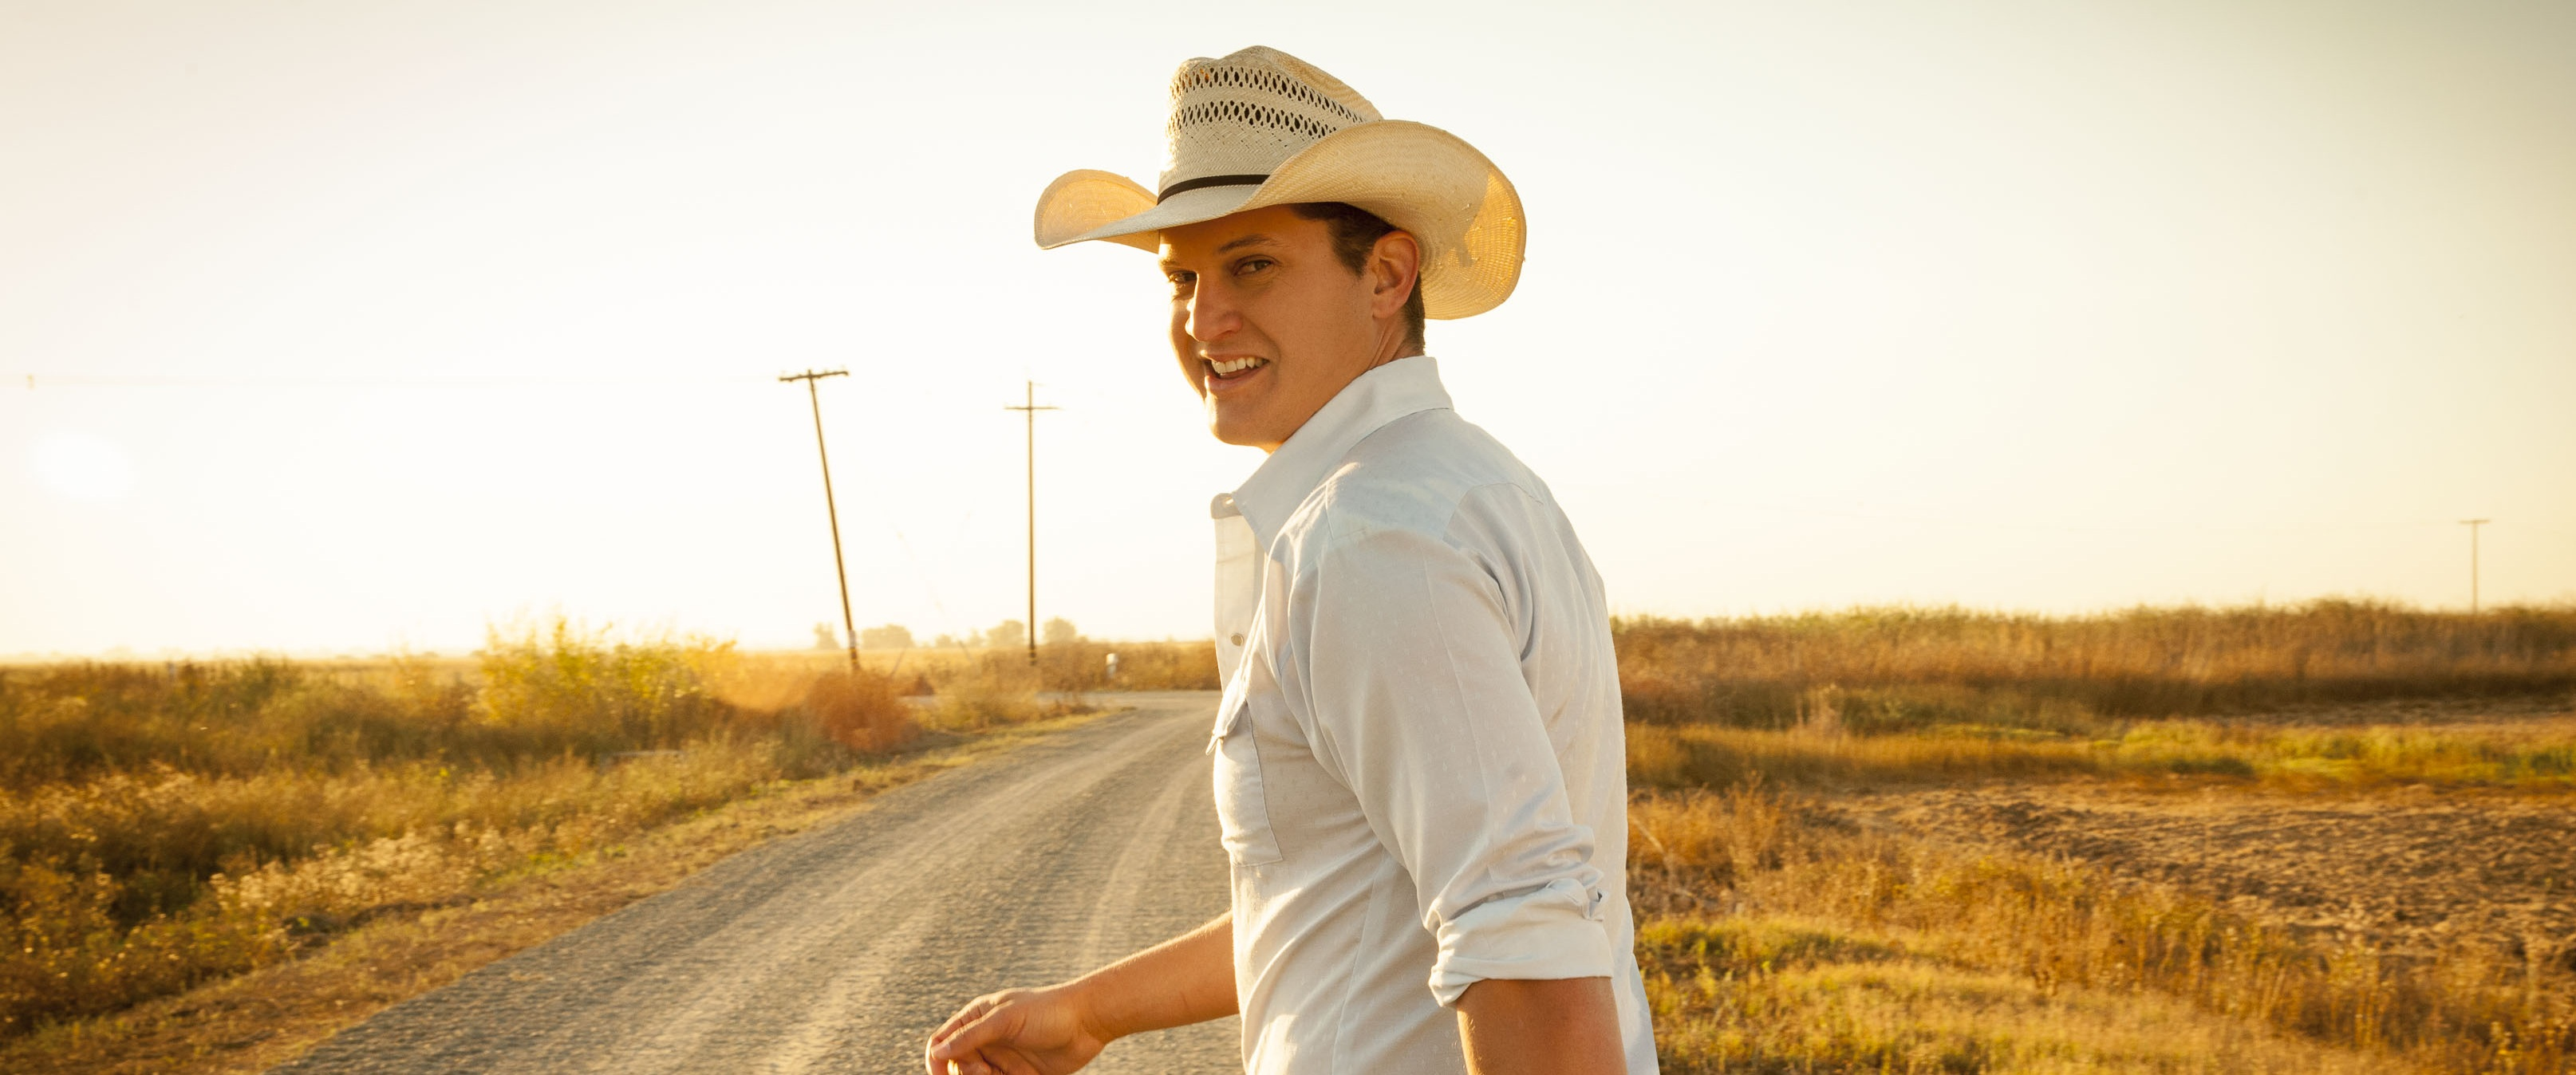 JON PARDI'S CALIFORNIA SUNRISE DEBUTS AT NO. 1.